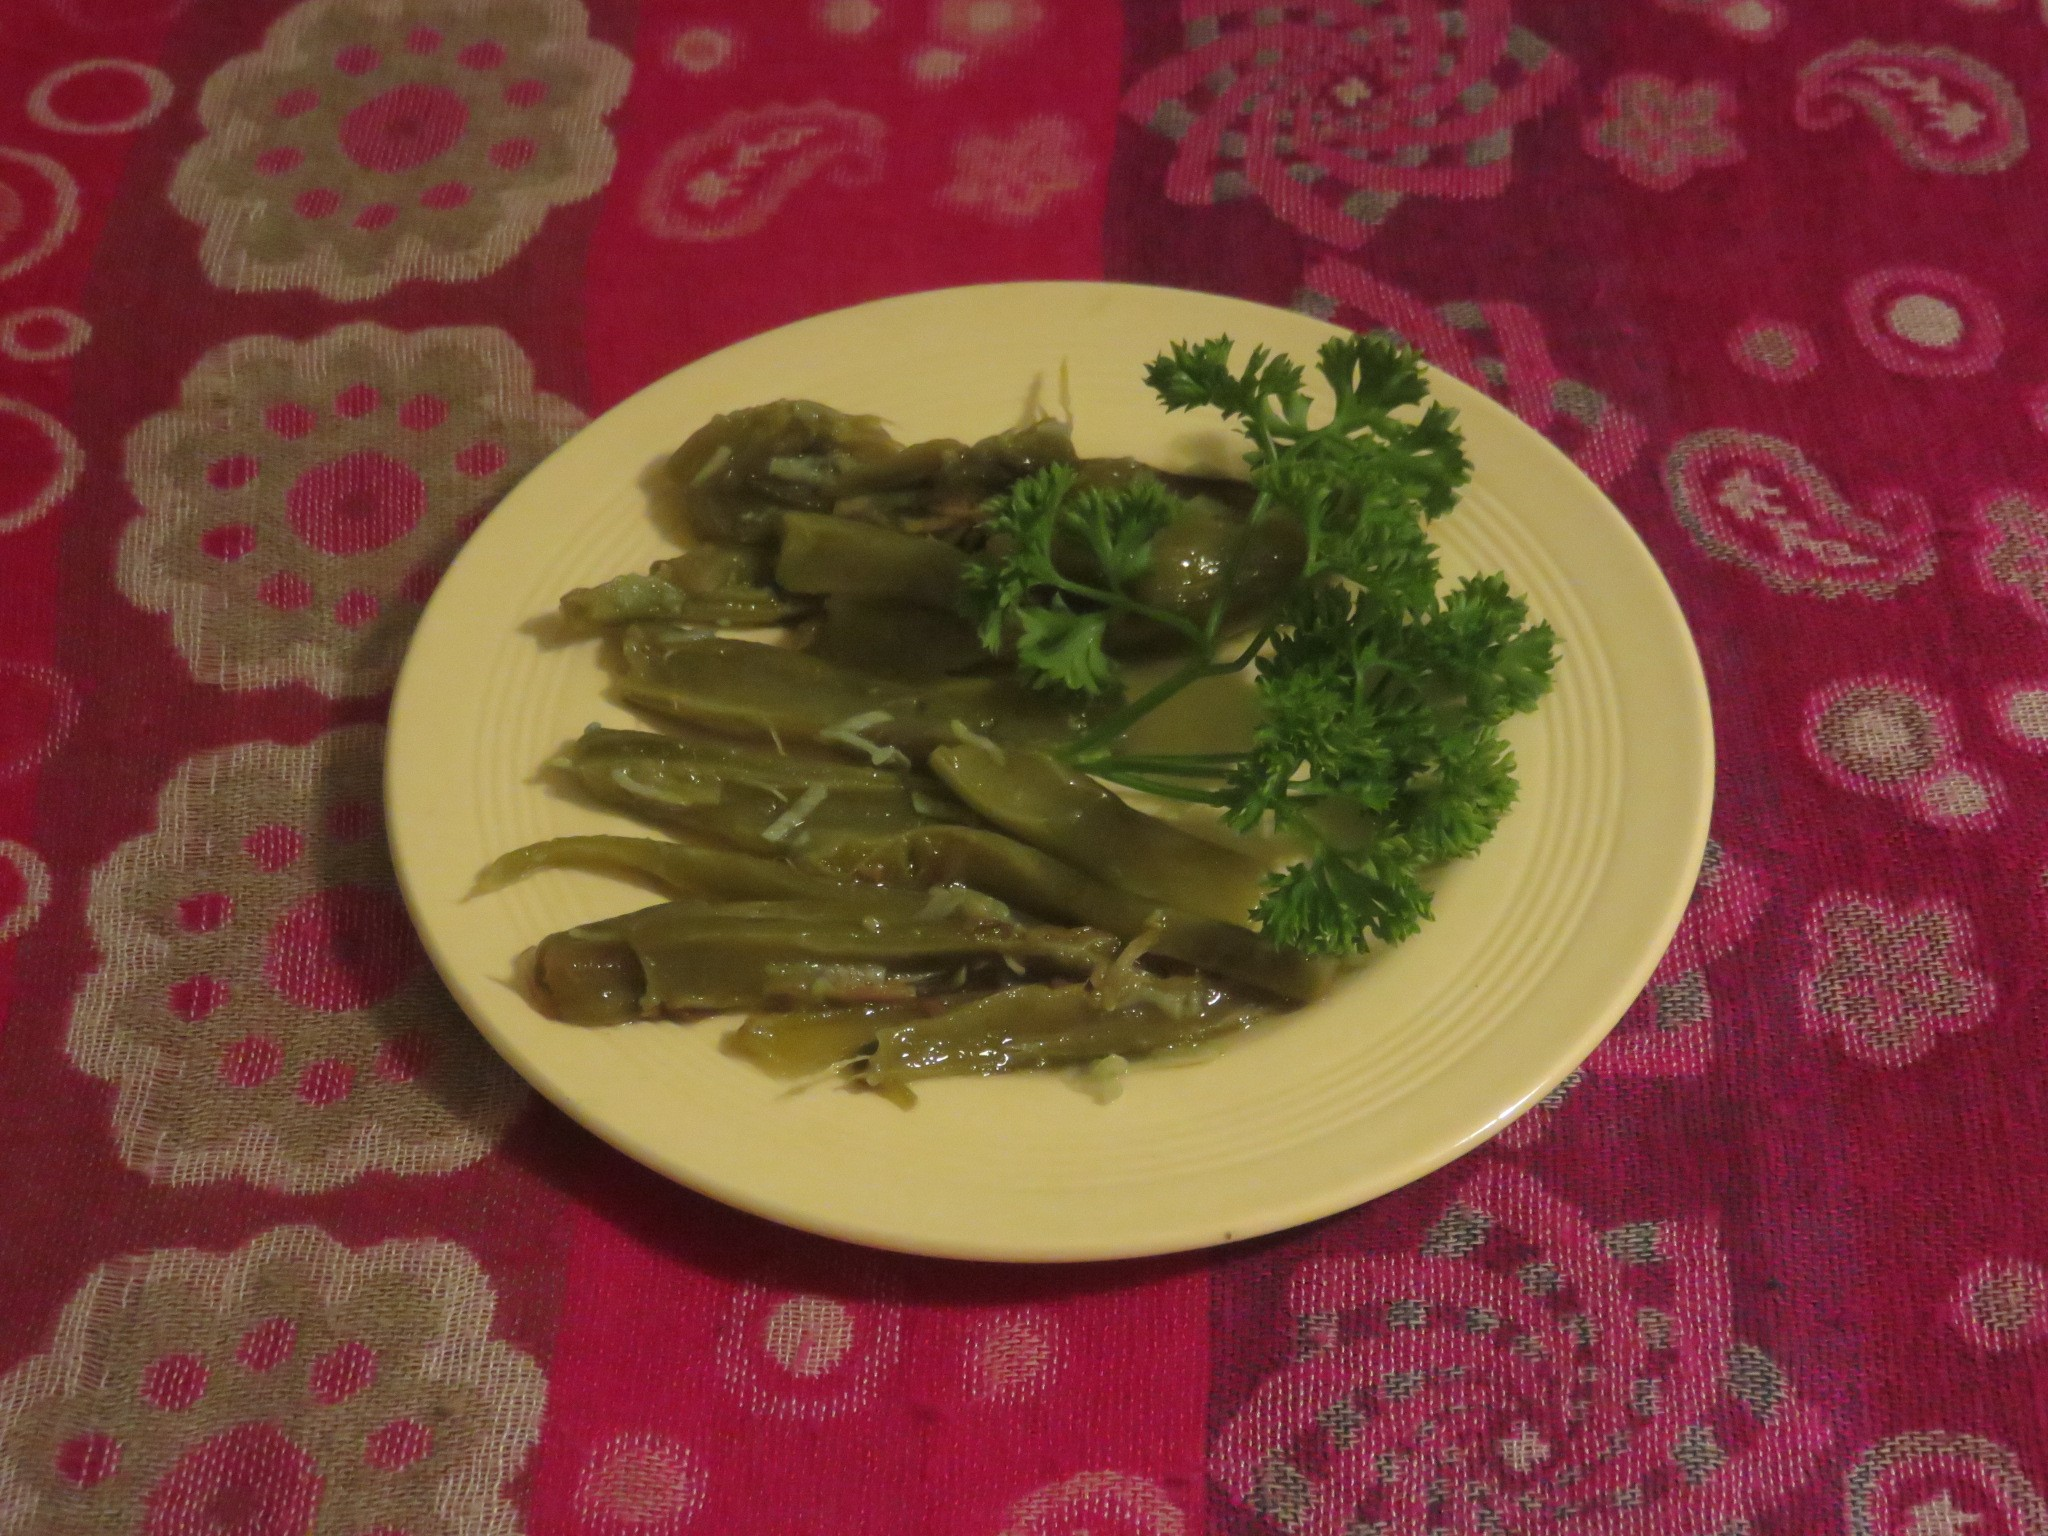 Fried nopales. The fibers can be seen easily. Young pads are more tender.